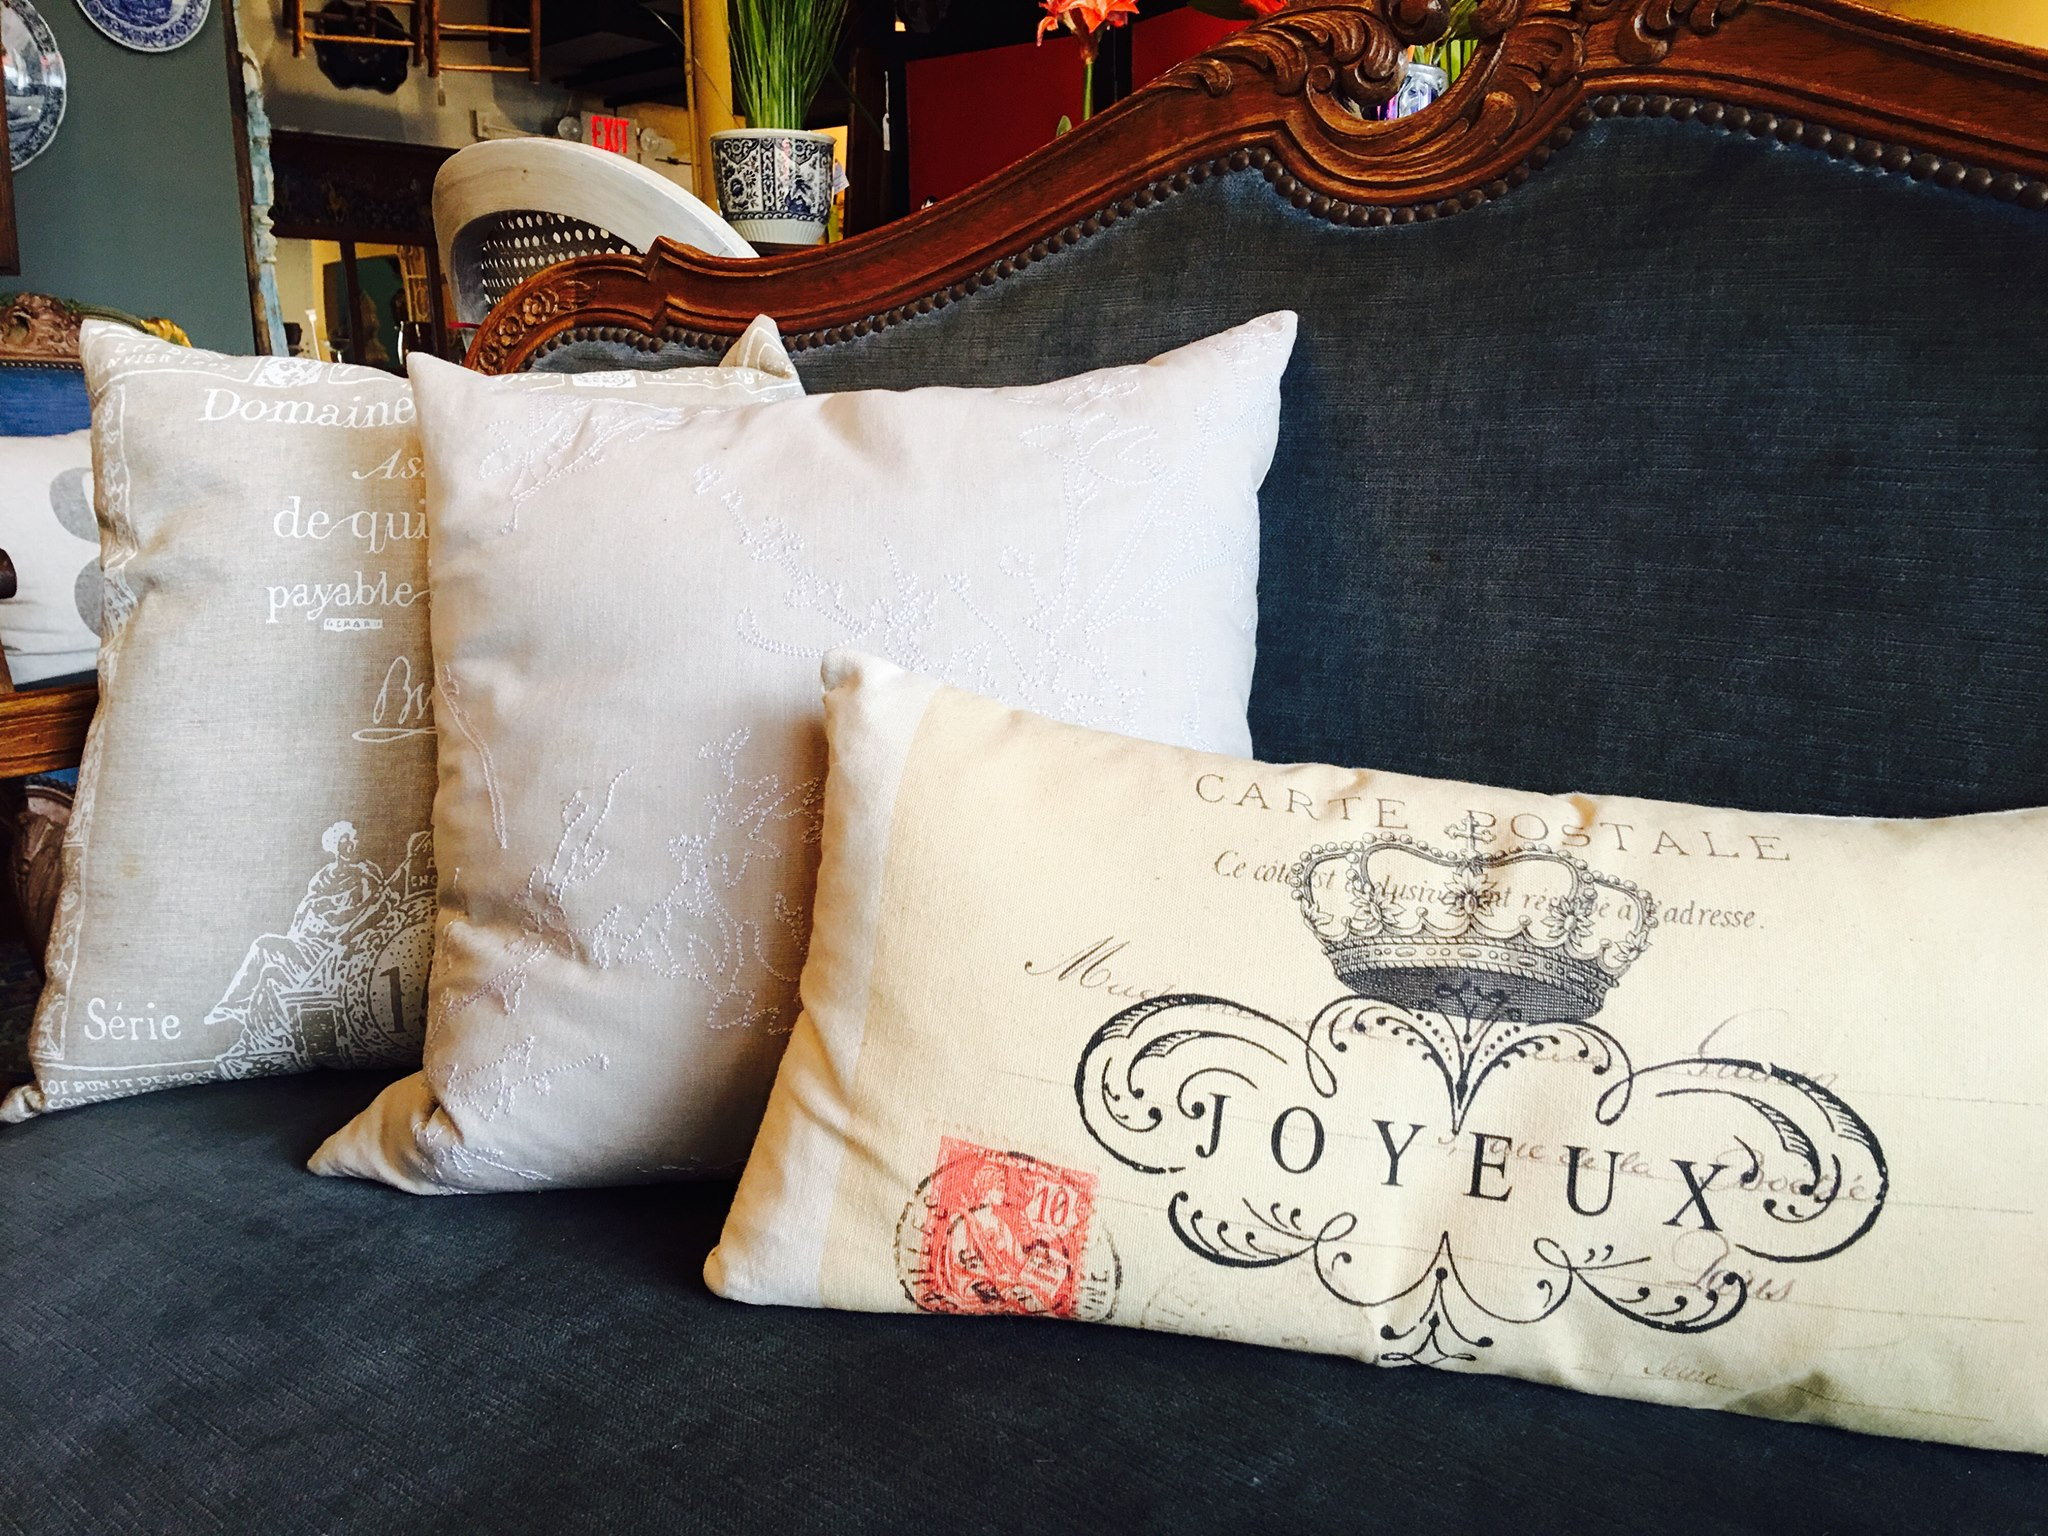 In need of some new throw pillows before all your holiday guest arrive!?! Come check out these beautiful new pillows! Neutral colors that will go with anything. Come shop Burns Antik Haus for all your holiday needs!!! 2195 Calder Ave, Beaumont, TX 77701, 409.835.3080.